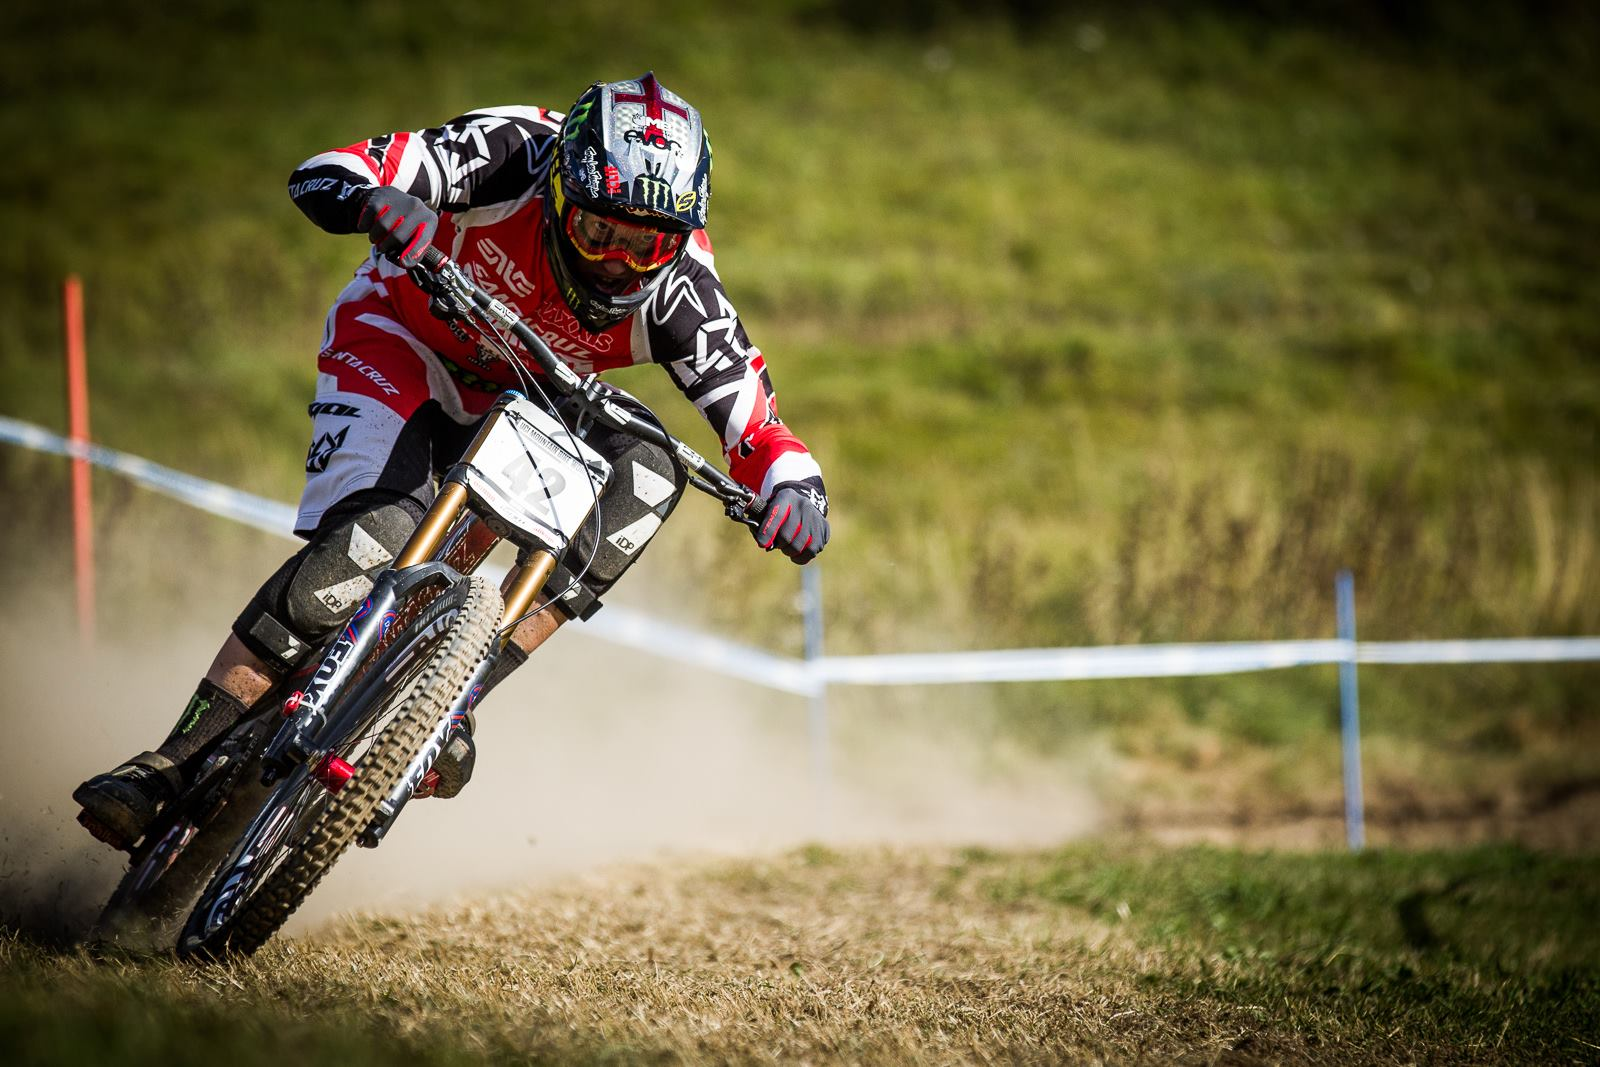 steve peat voll in aktion